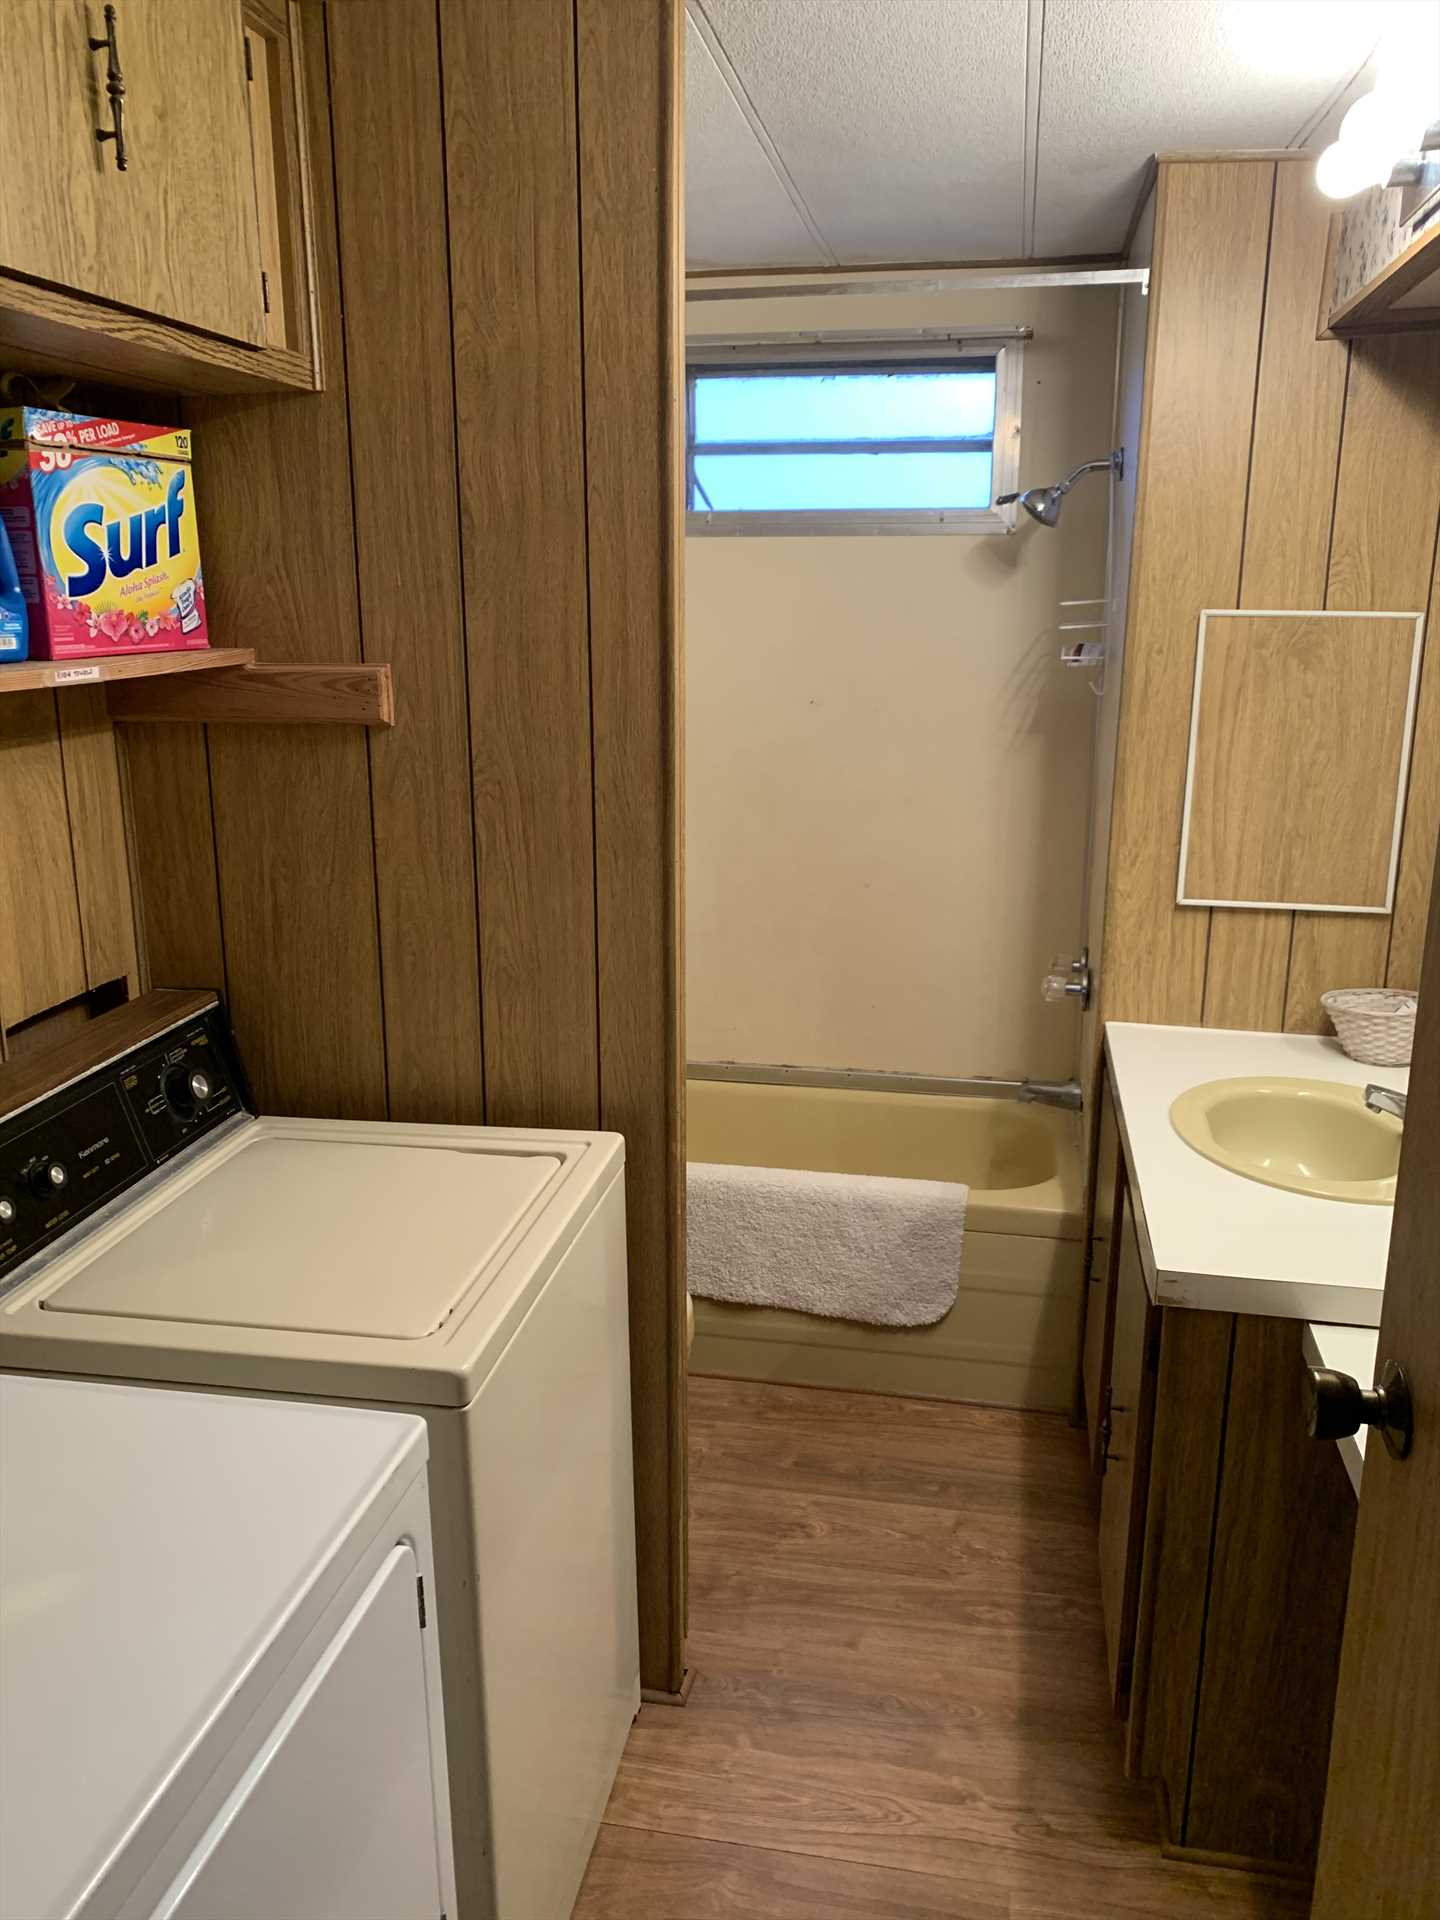 You'll find a shower/tub combo in the bathroom, and a handy washer/dryer combo close by, too!